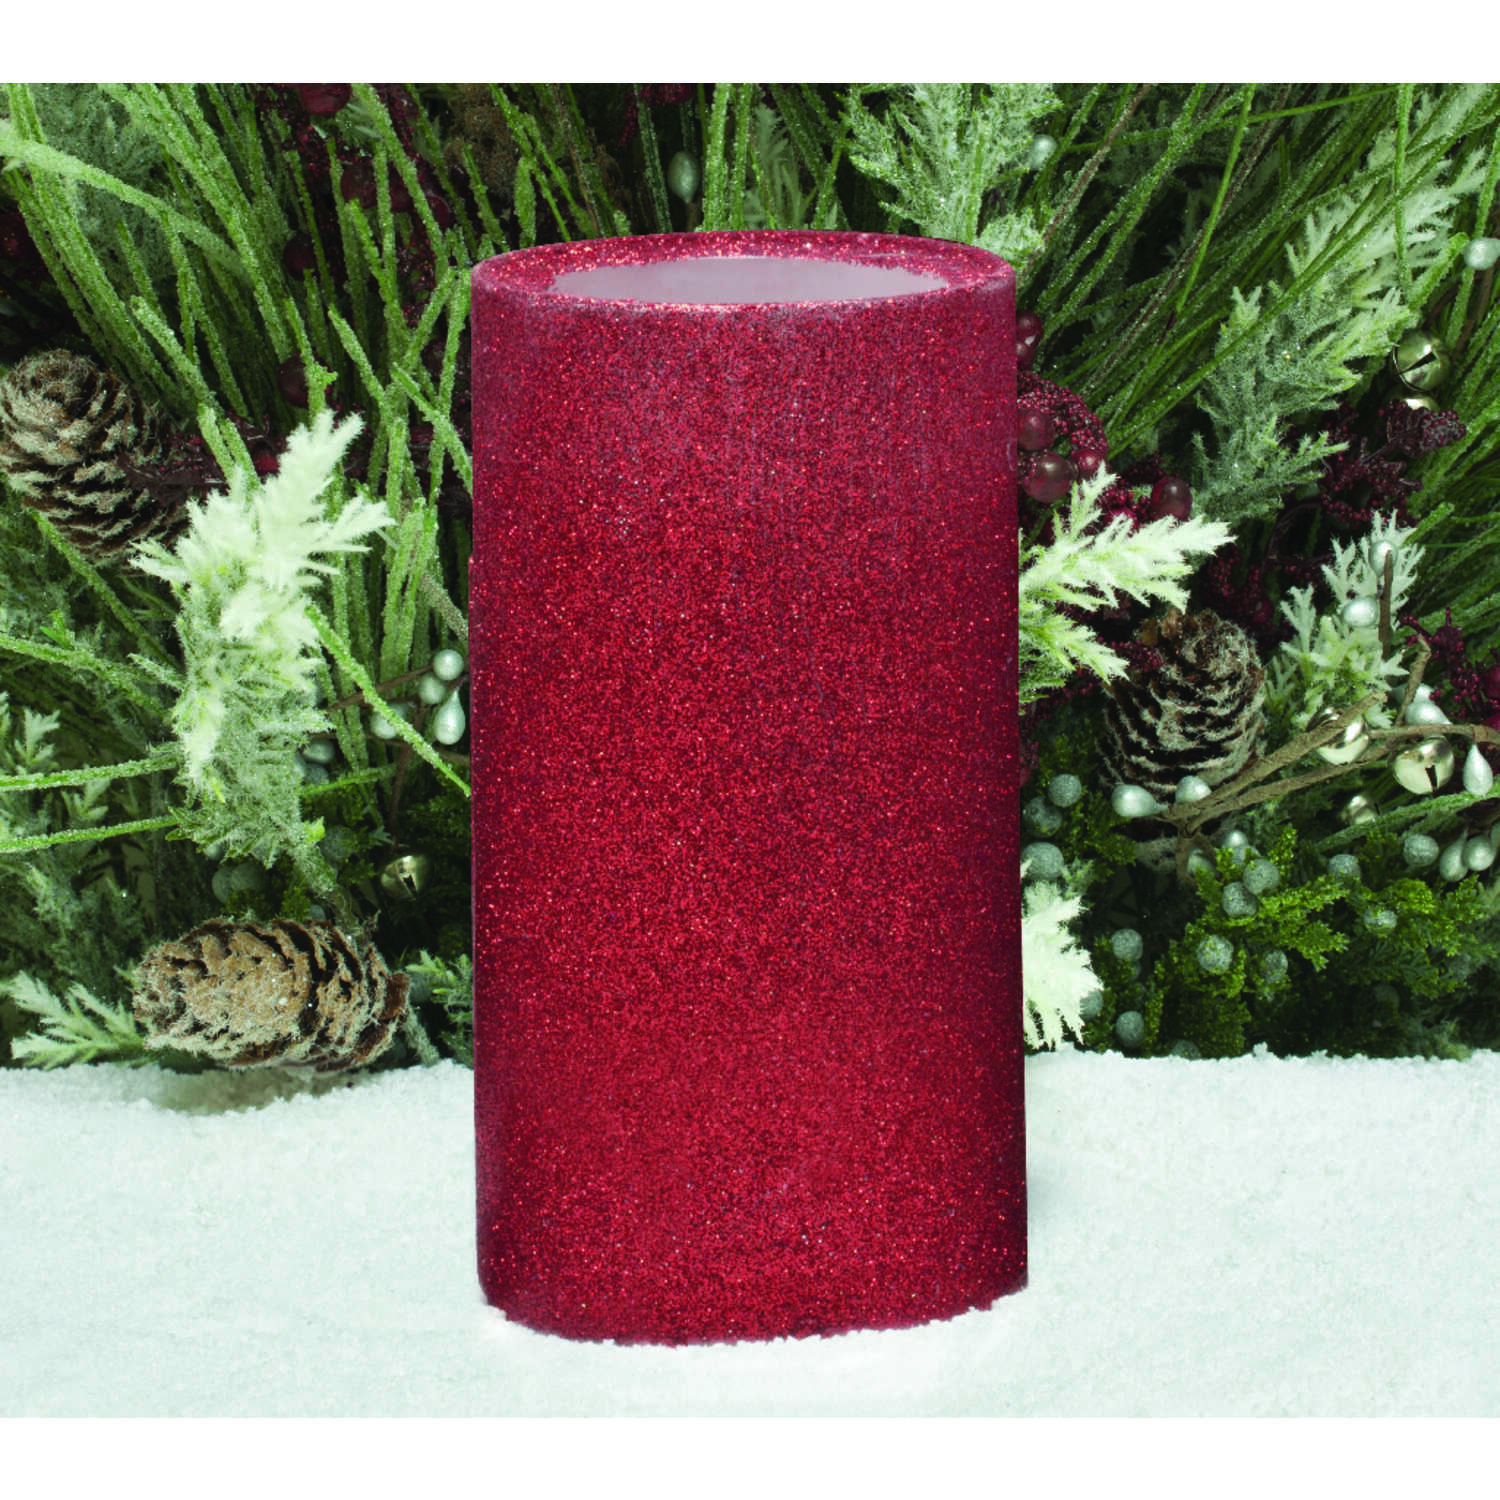 Inglow  No Scent Red  Pillar  Candle  7 in. H x 3 in. Dia.